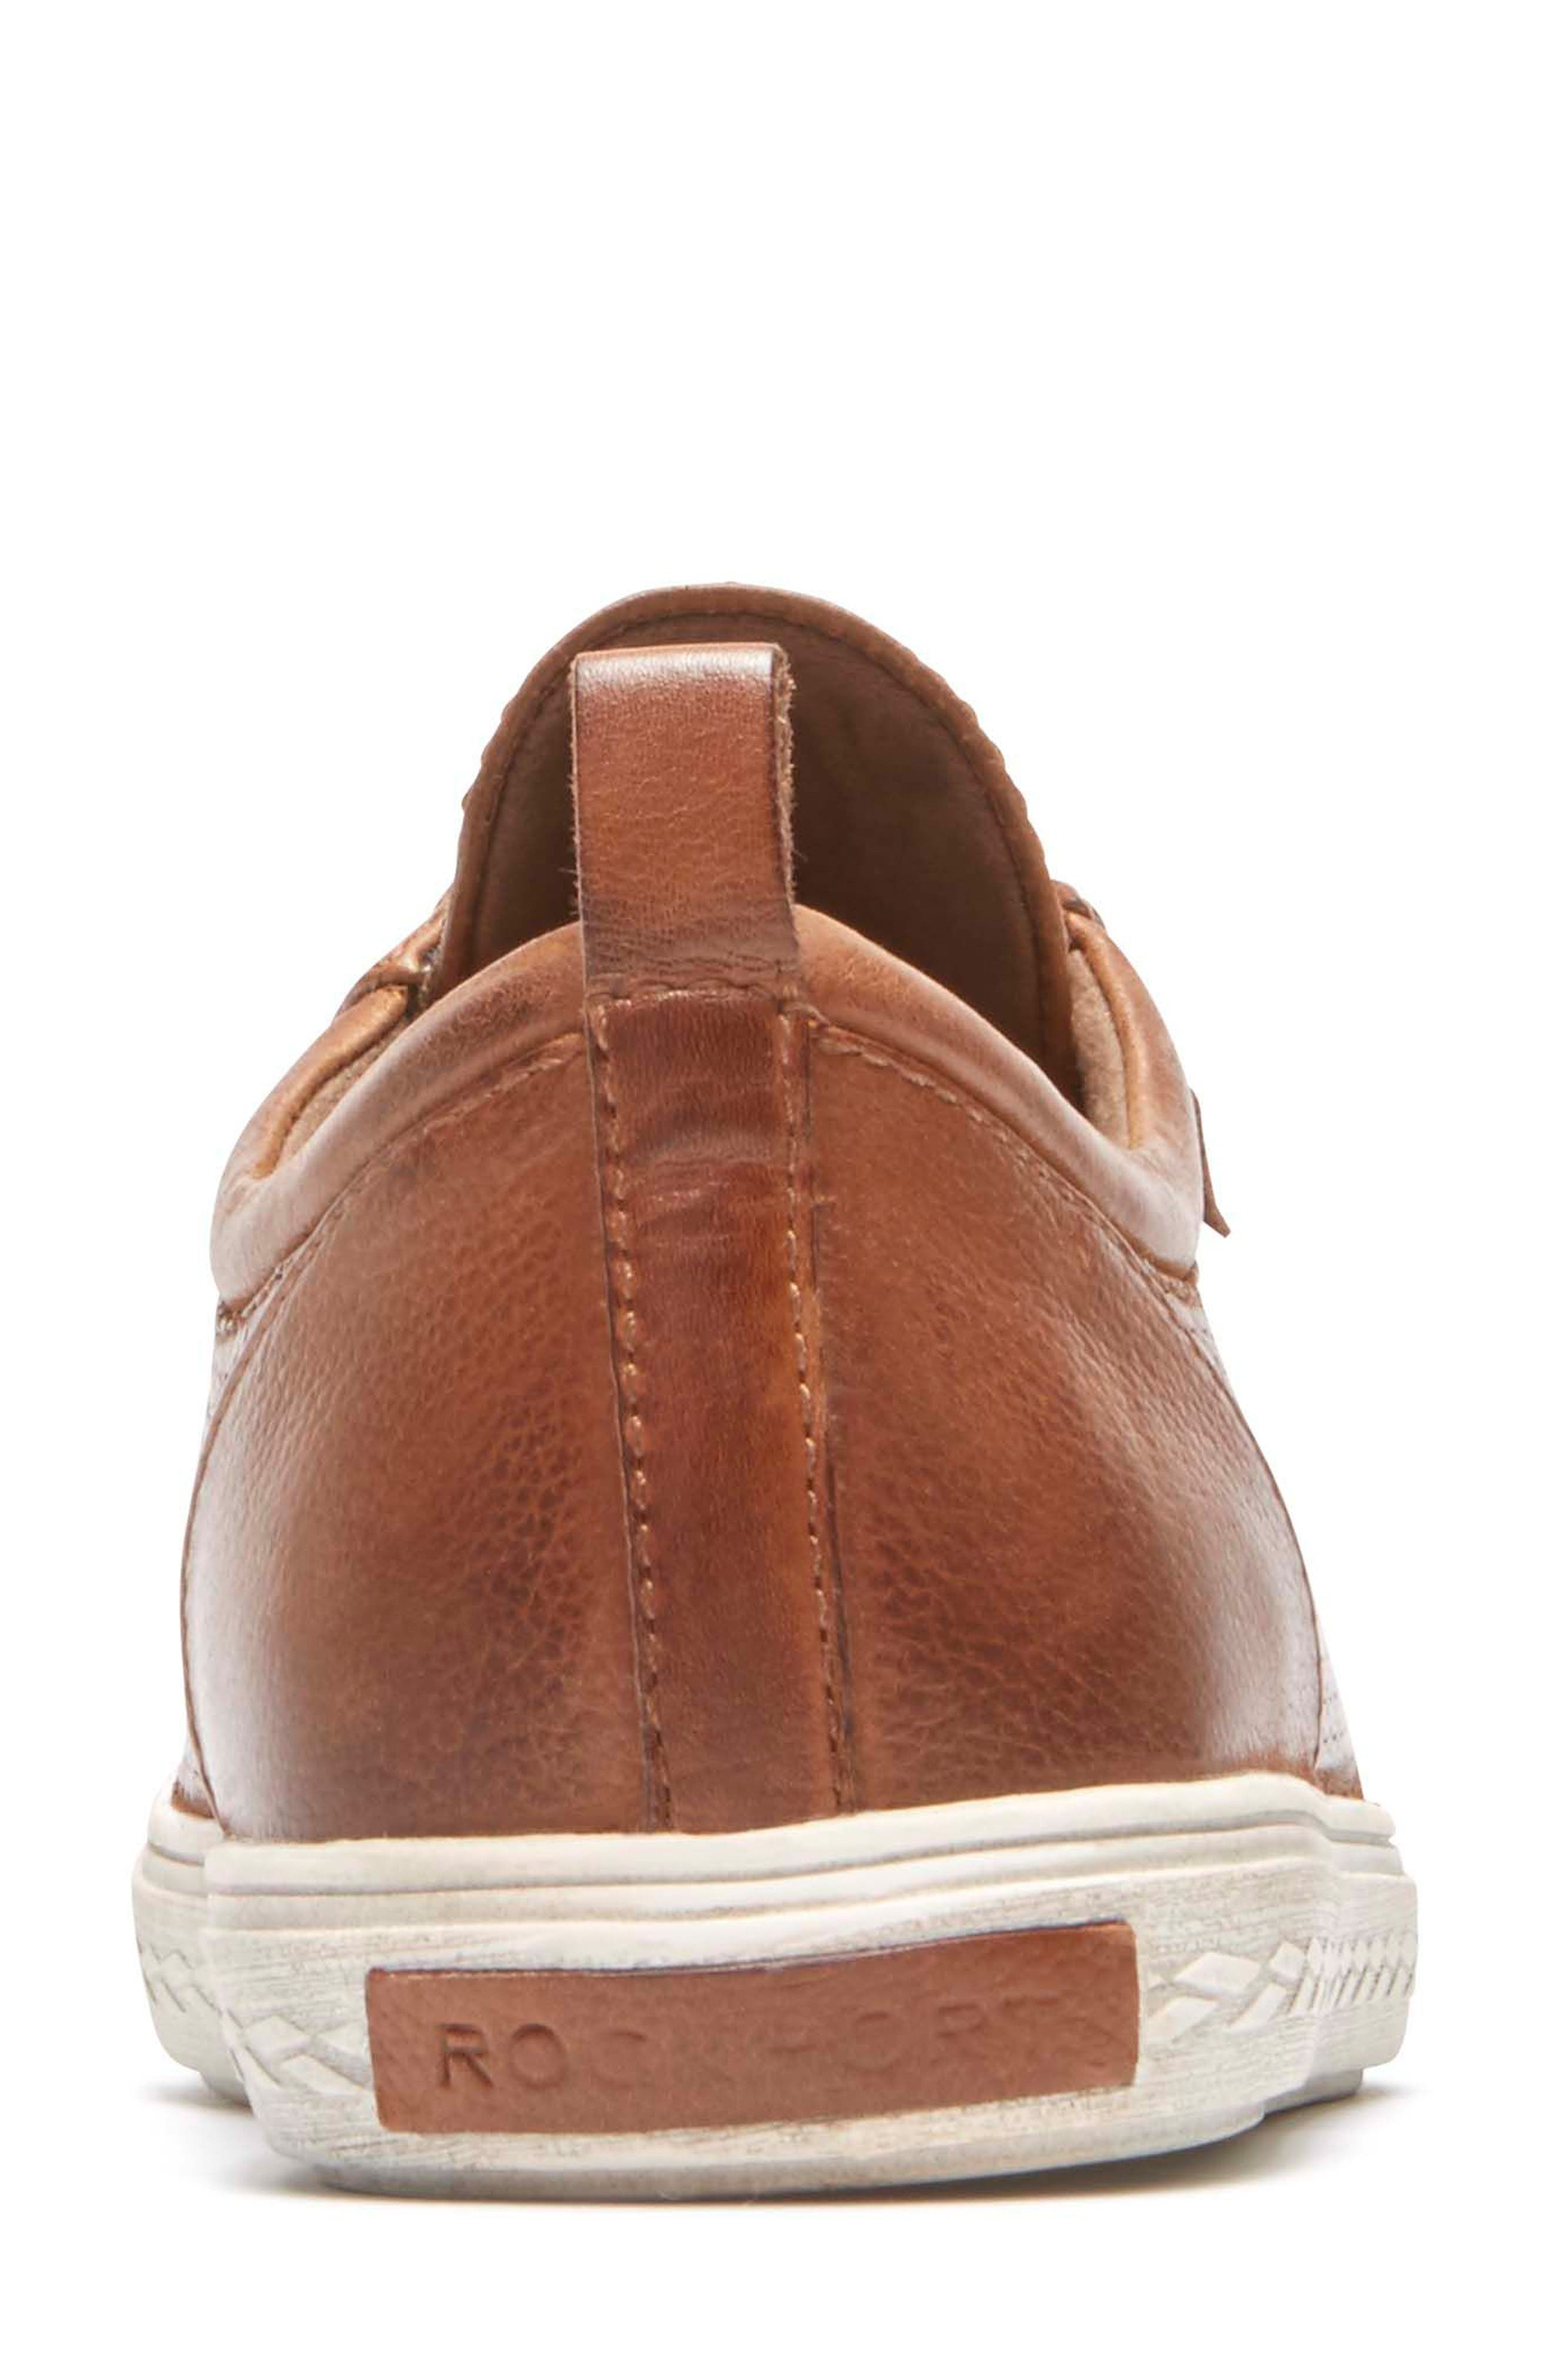 Willa Sneaker,                             Alternate thumbnail 7, color,                             ALMOND LEATHER